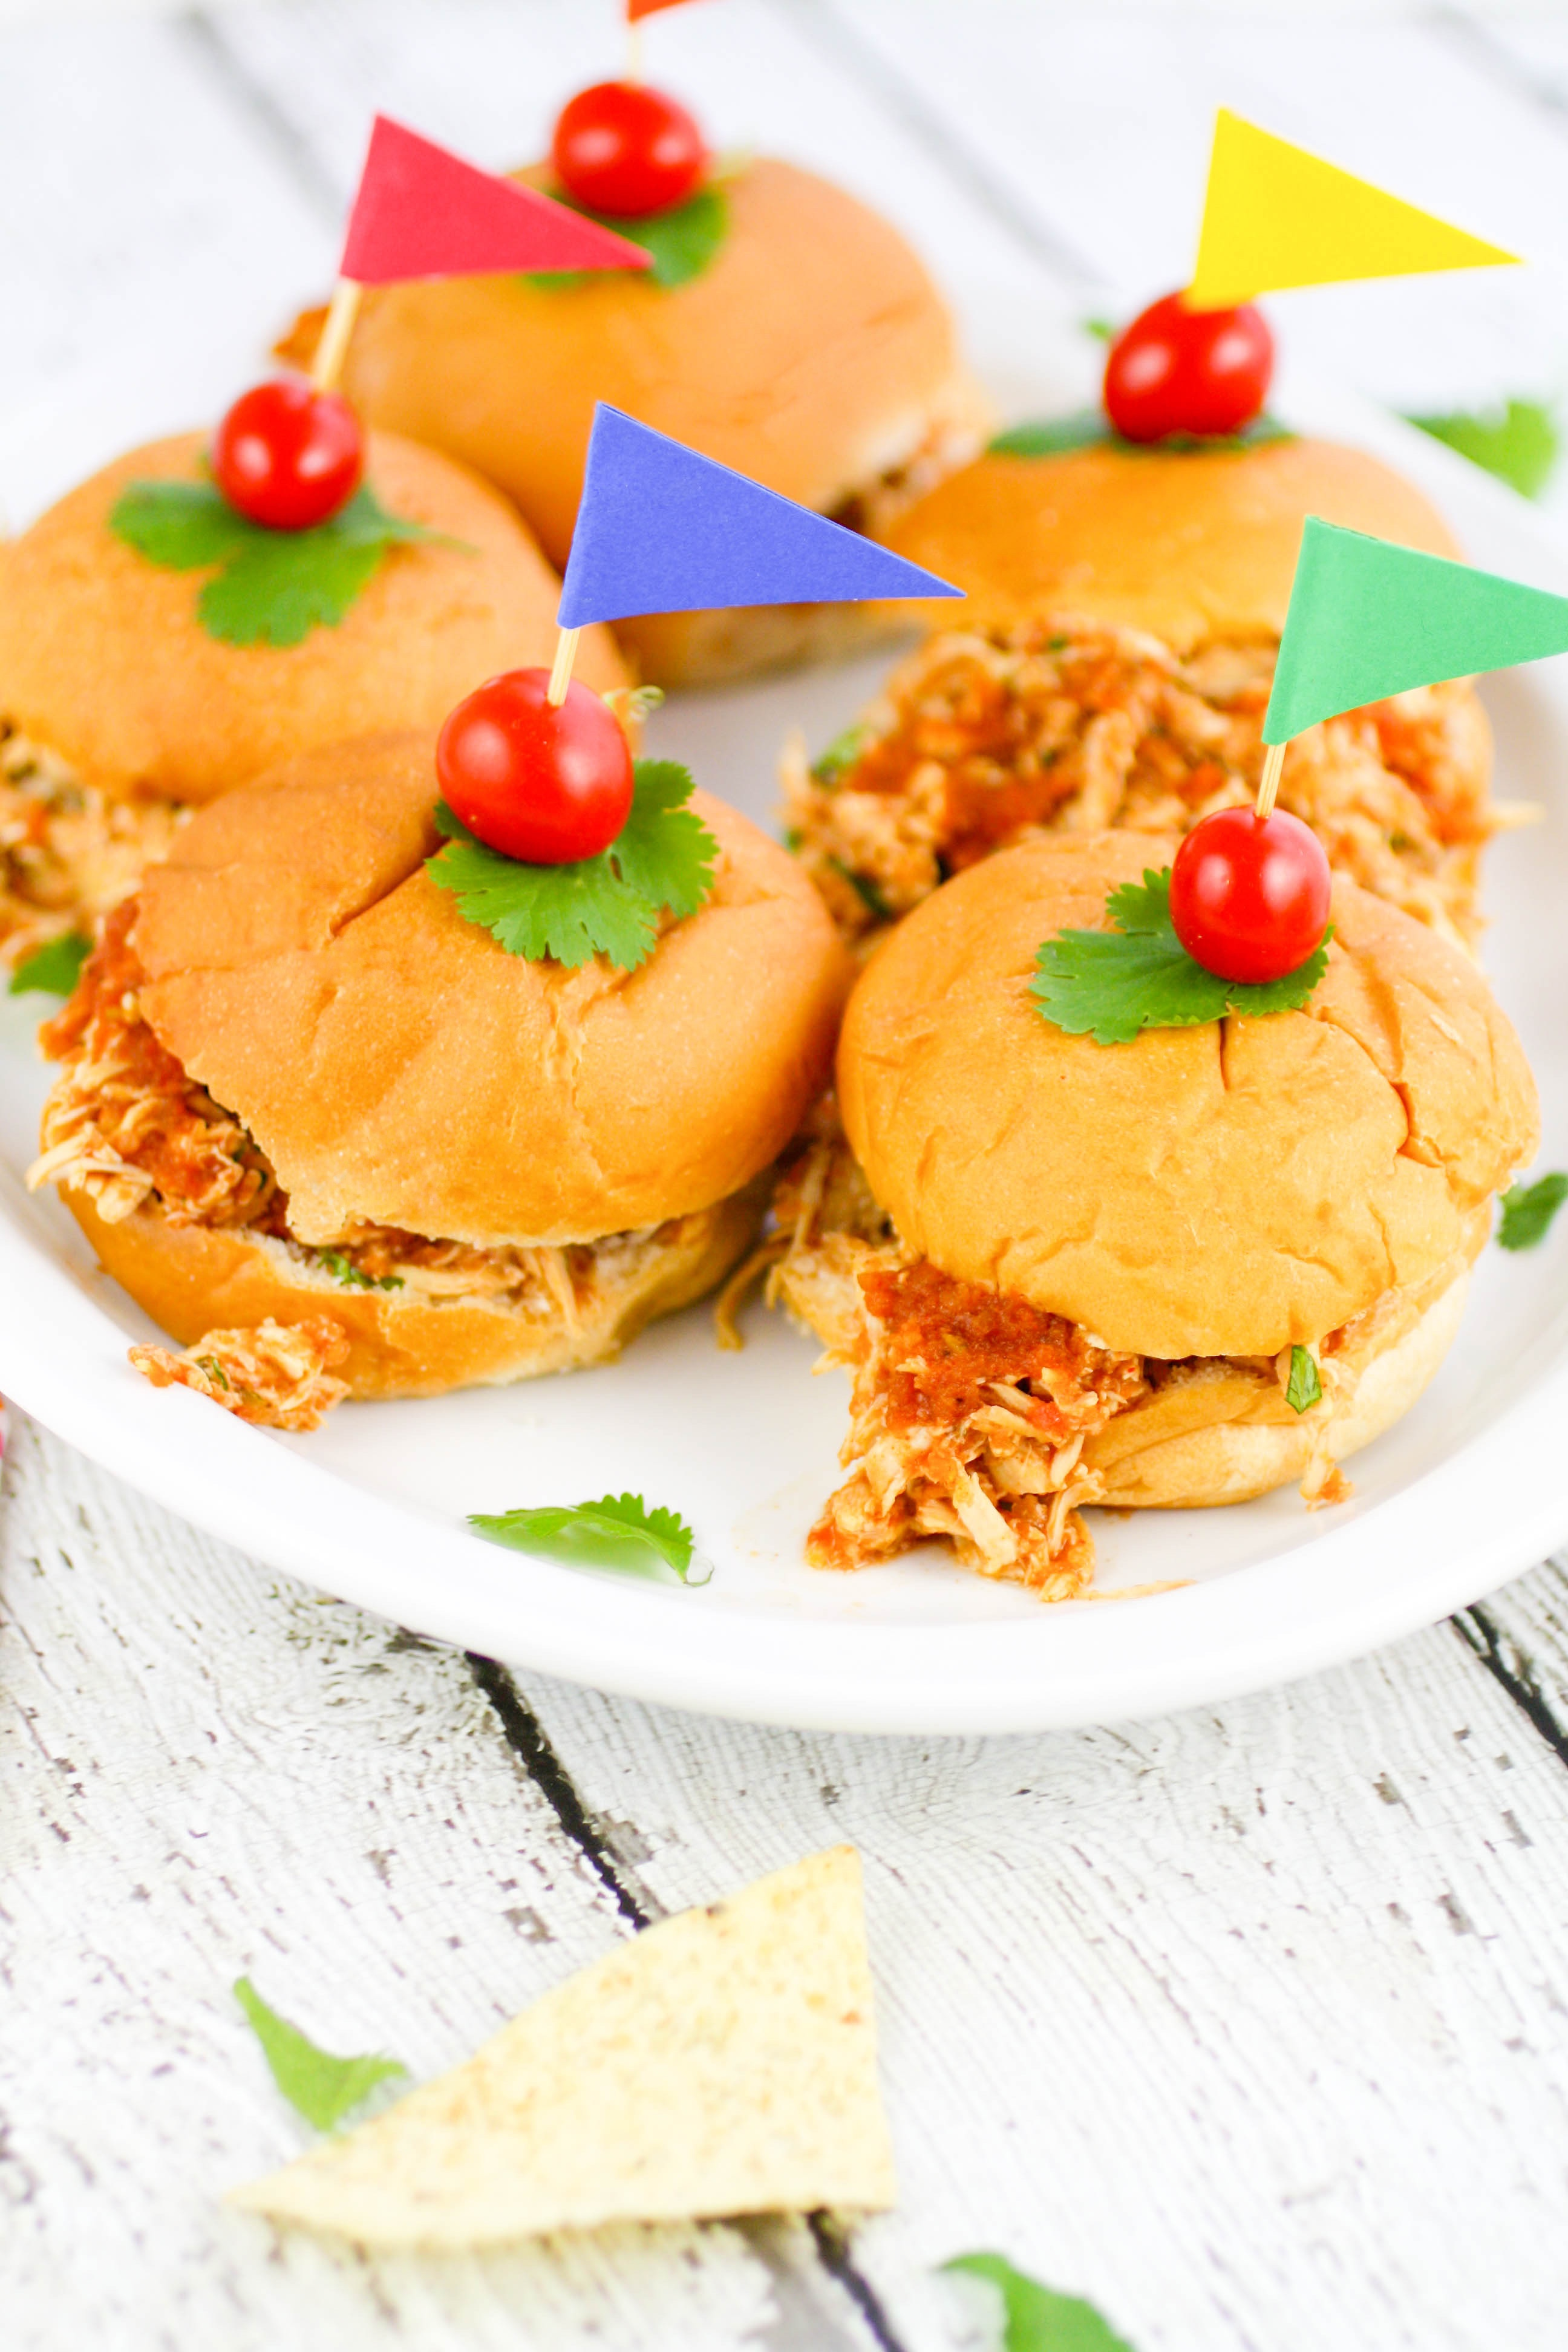 Slow Cooker Southwestern Pulled Chicken Sandwiches are tasty and so easy to make. Slow Cooker Southwestern Pulled Chicken Sandwiches are ideal for feeding a crowd, and tasty, too!